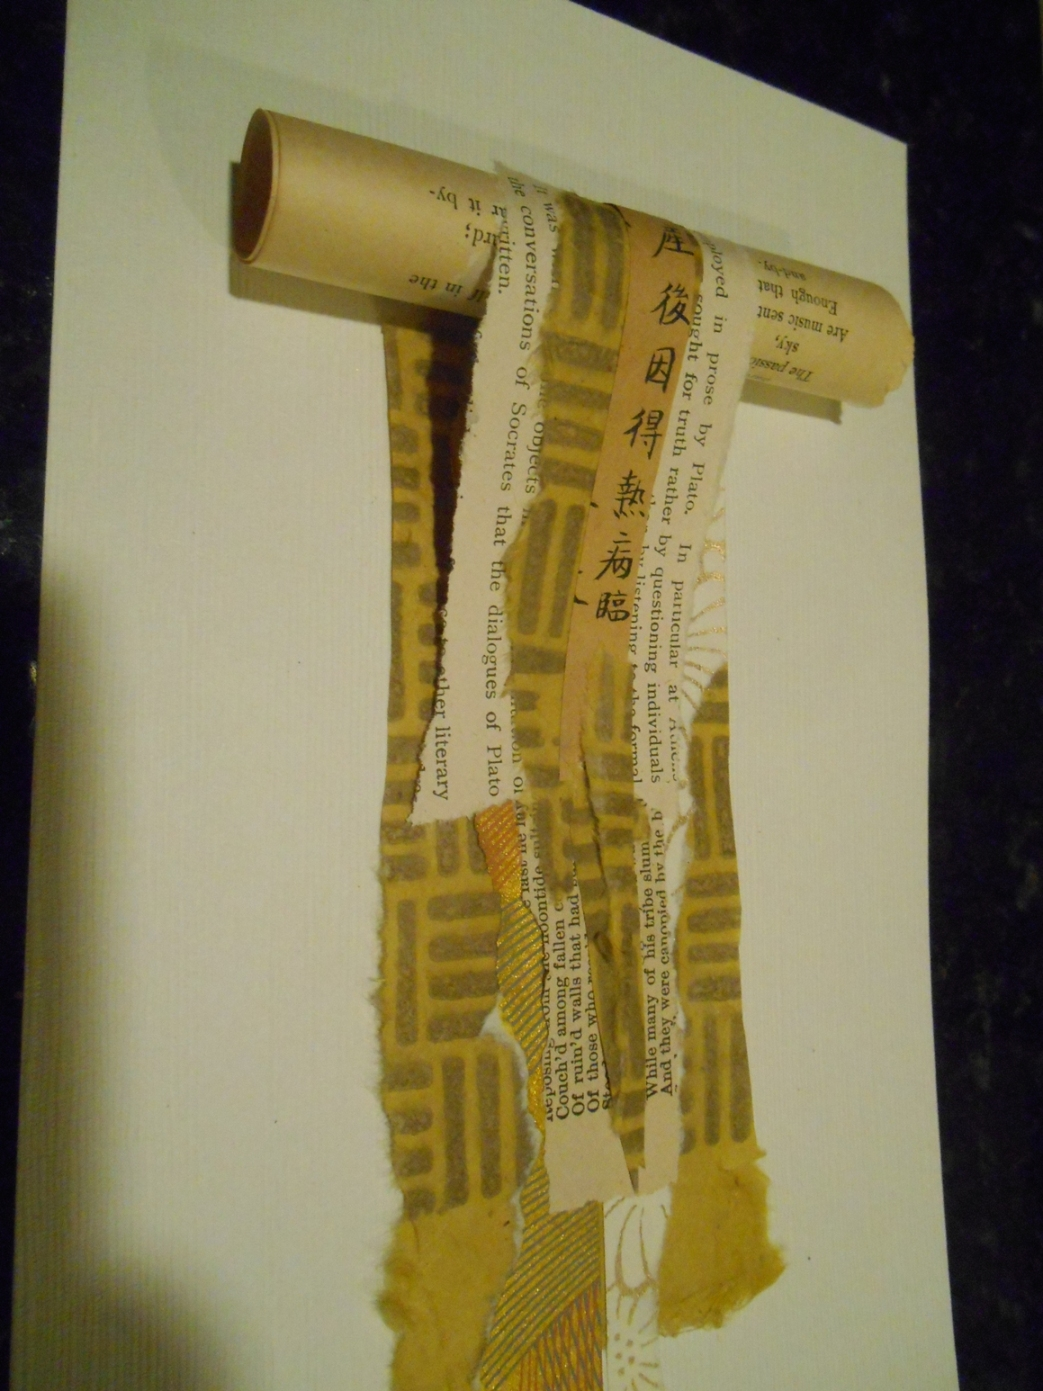 TAC_paperarts_collage_papersculptures_003.JPG